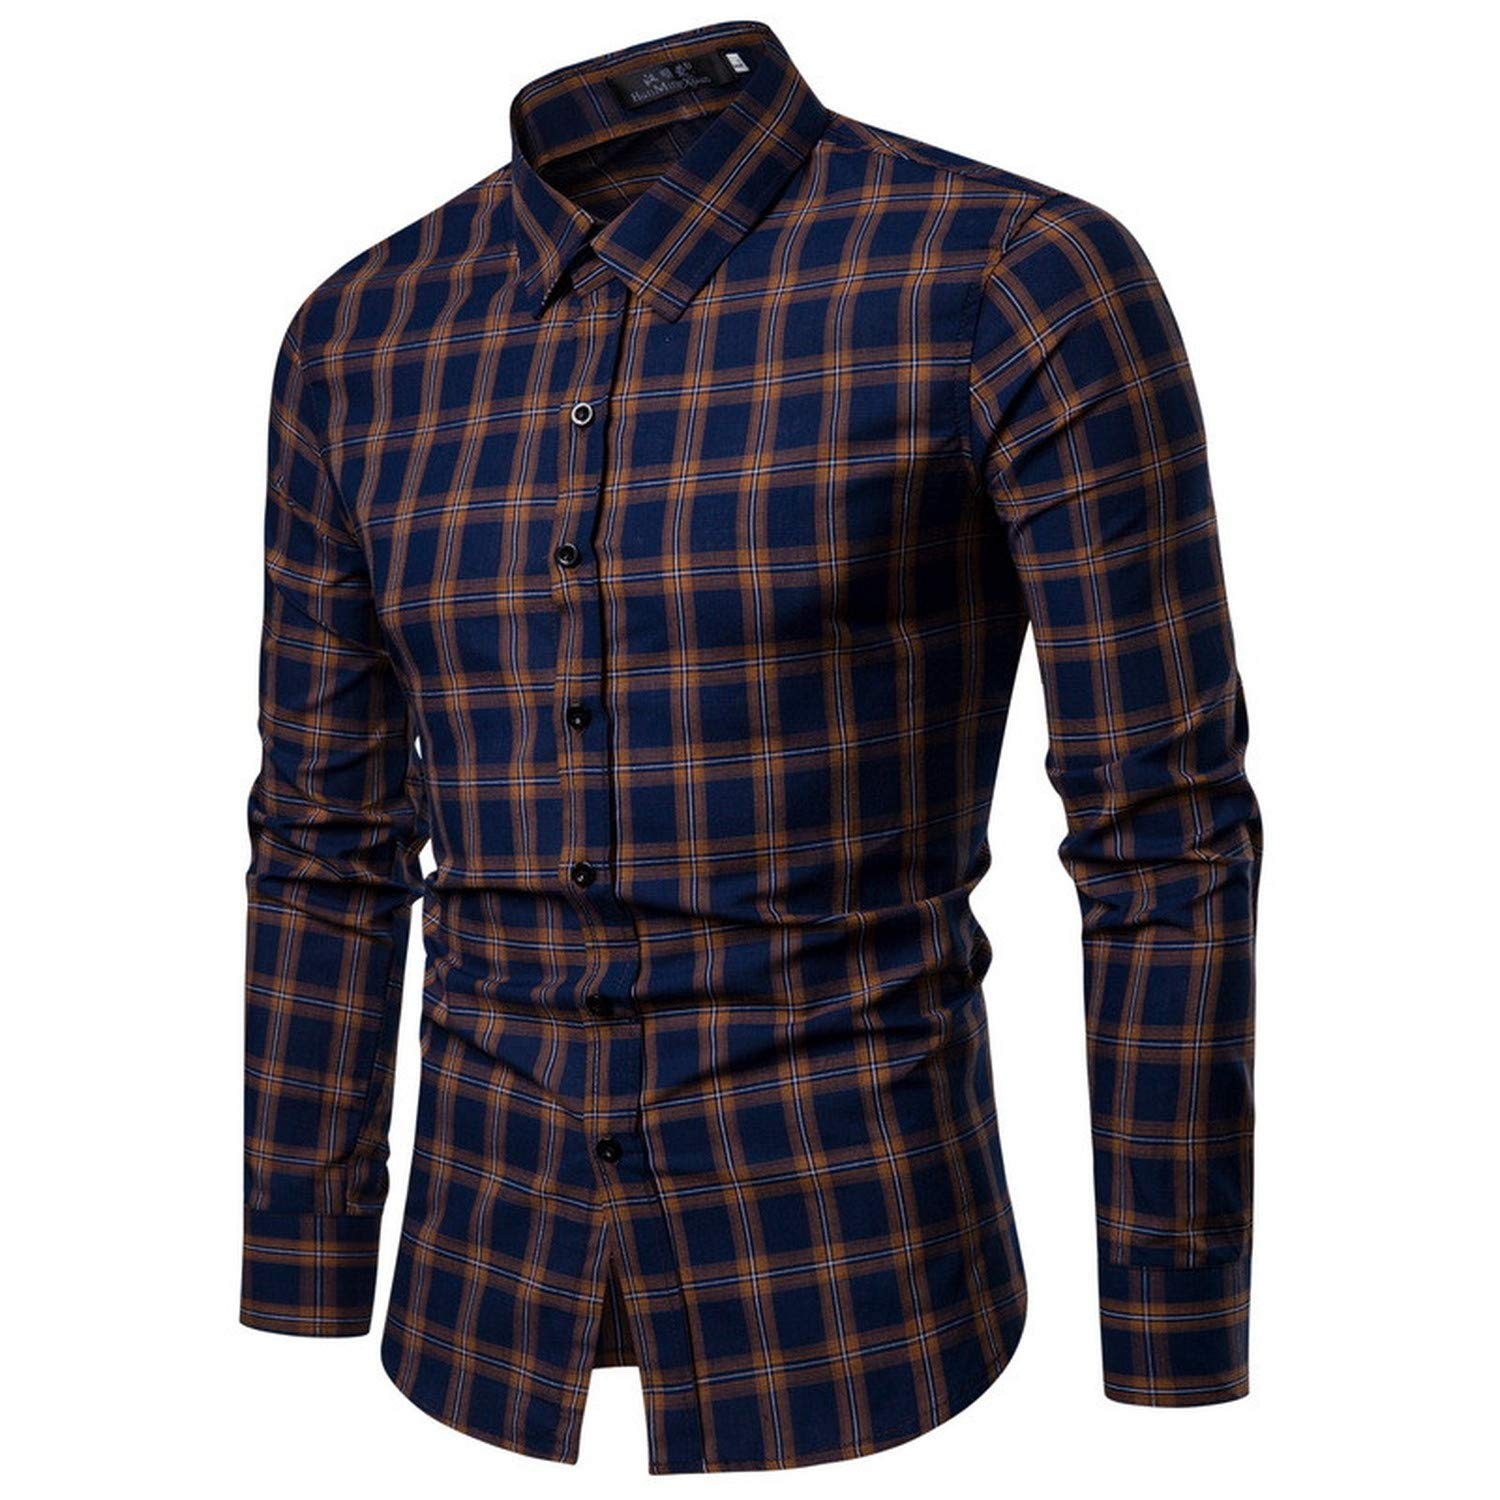 EspTmall New Top Mens Winter and Autumn Casual Long Sleeved Shirt Fashion Elegant Business Office Work Wear Blouse Males Navy M United States